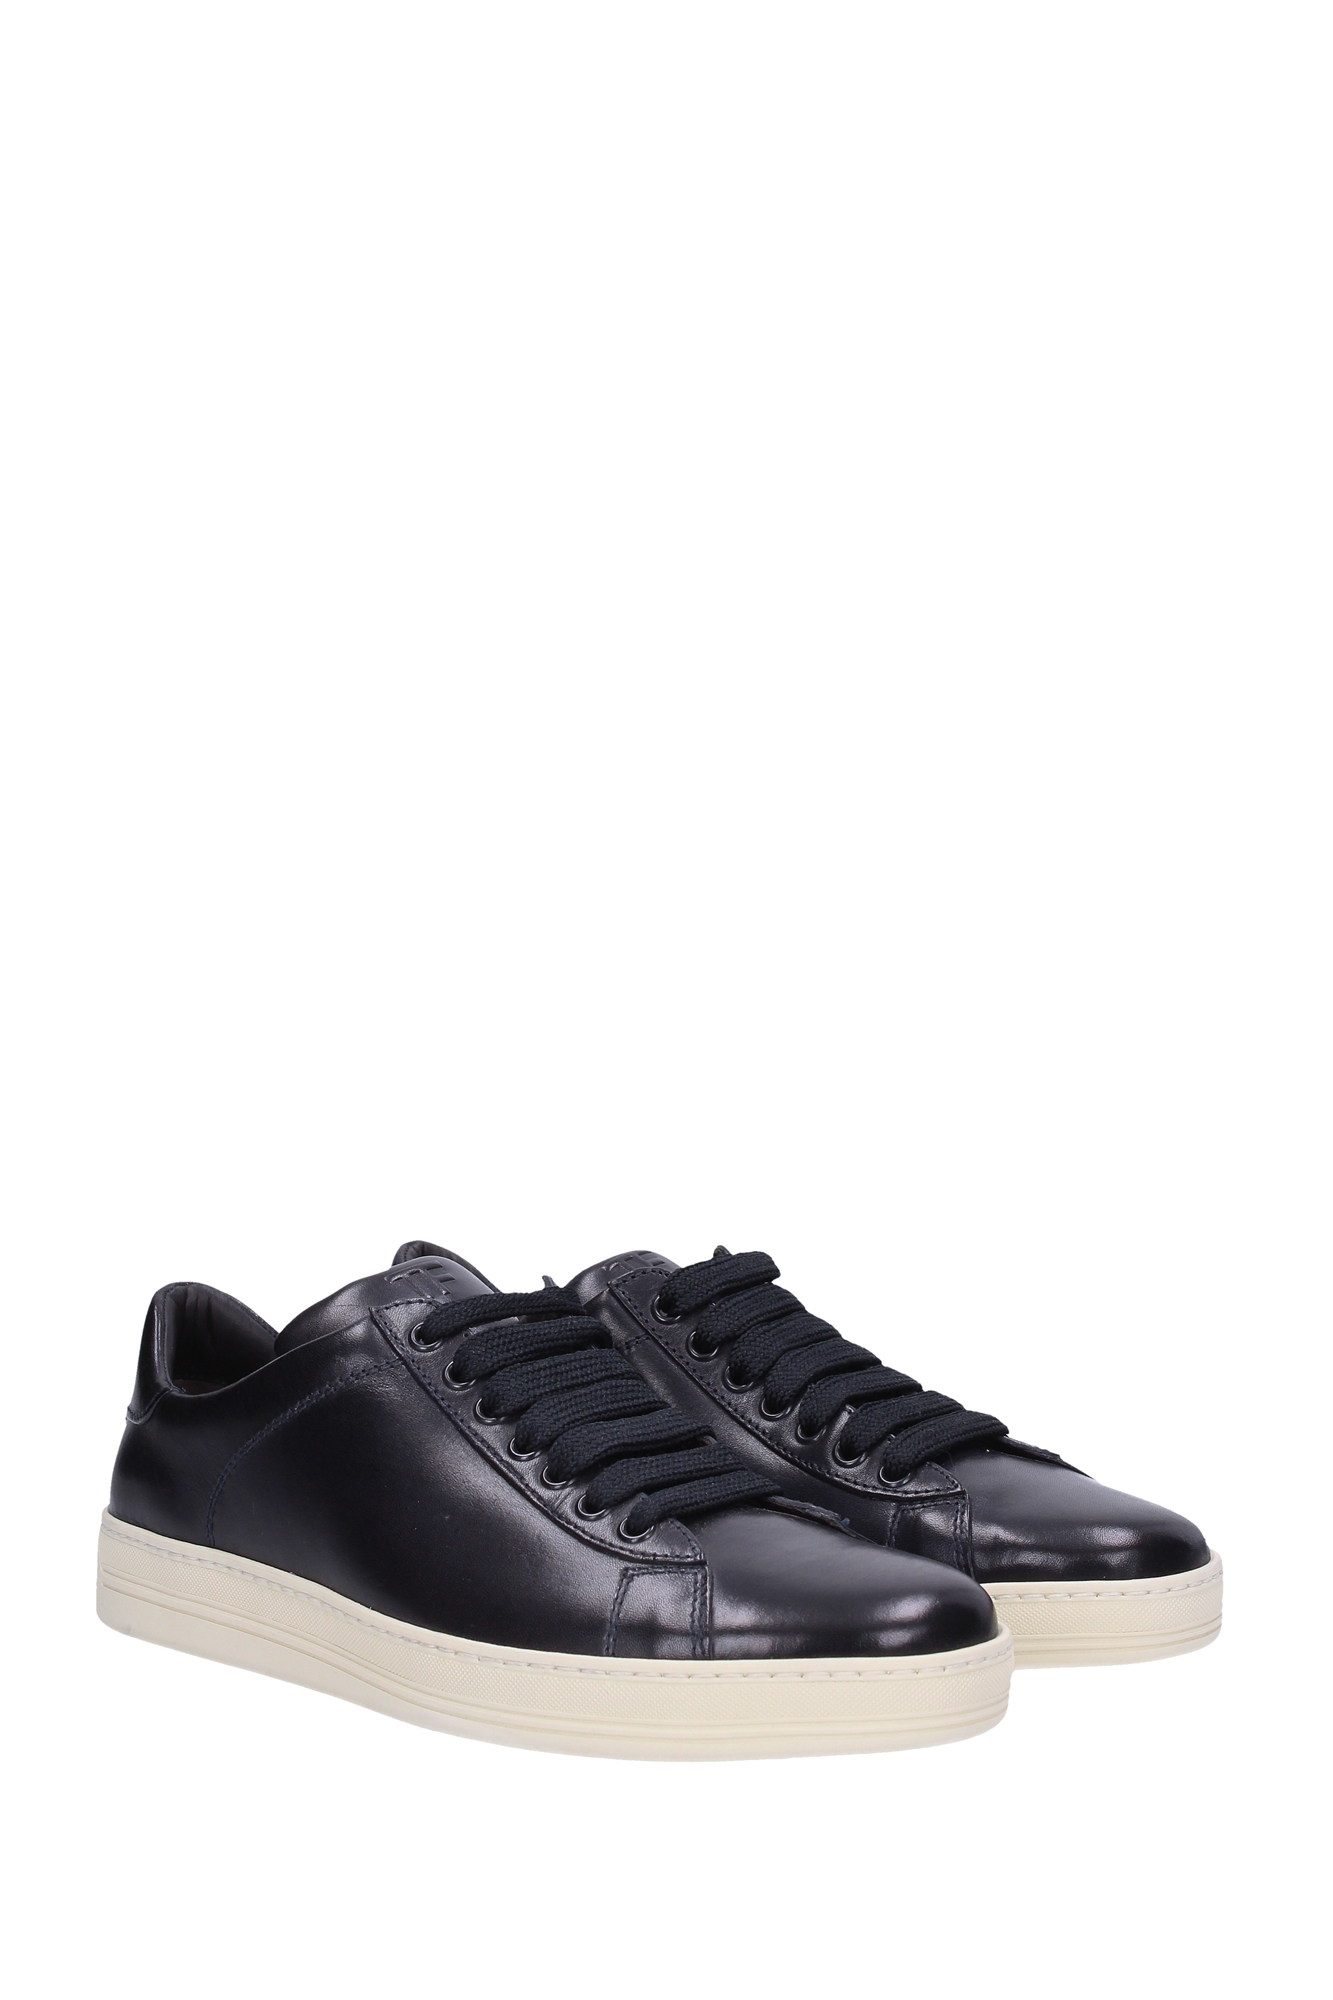 Sneakers Tom Ford Men Leather Blue 51J0866TKYAIND